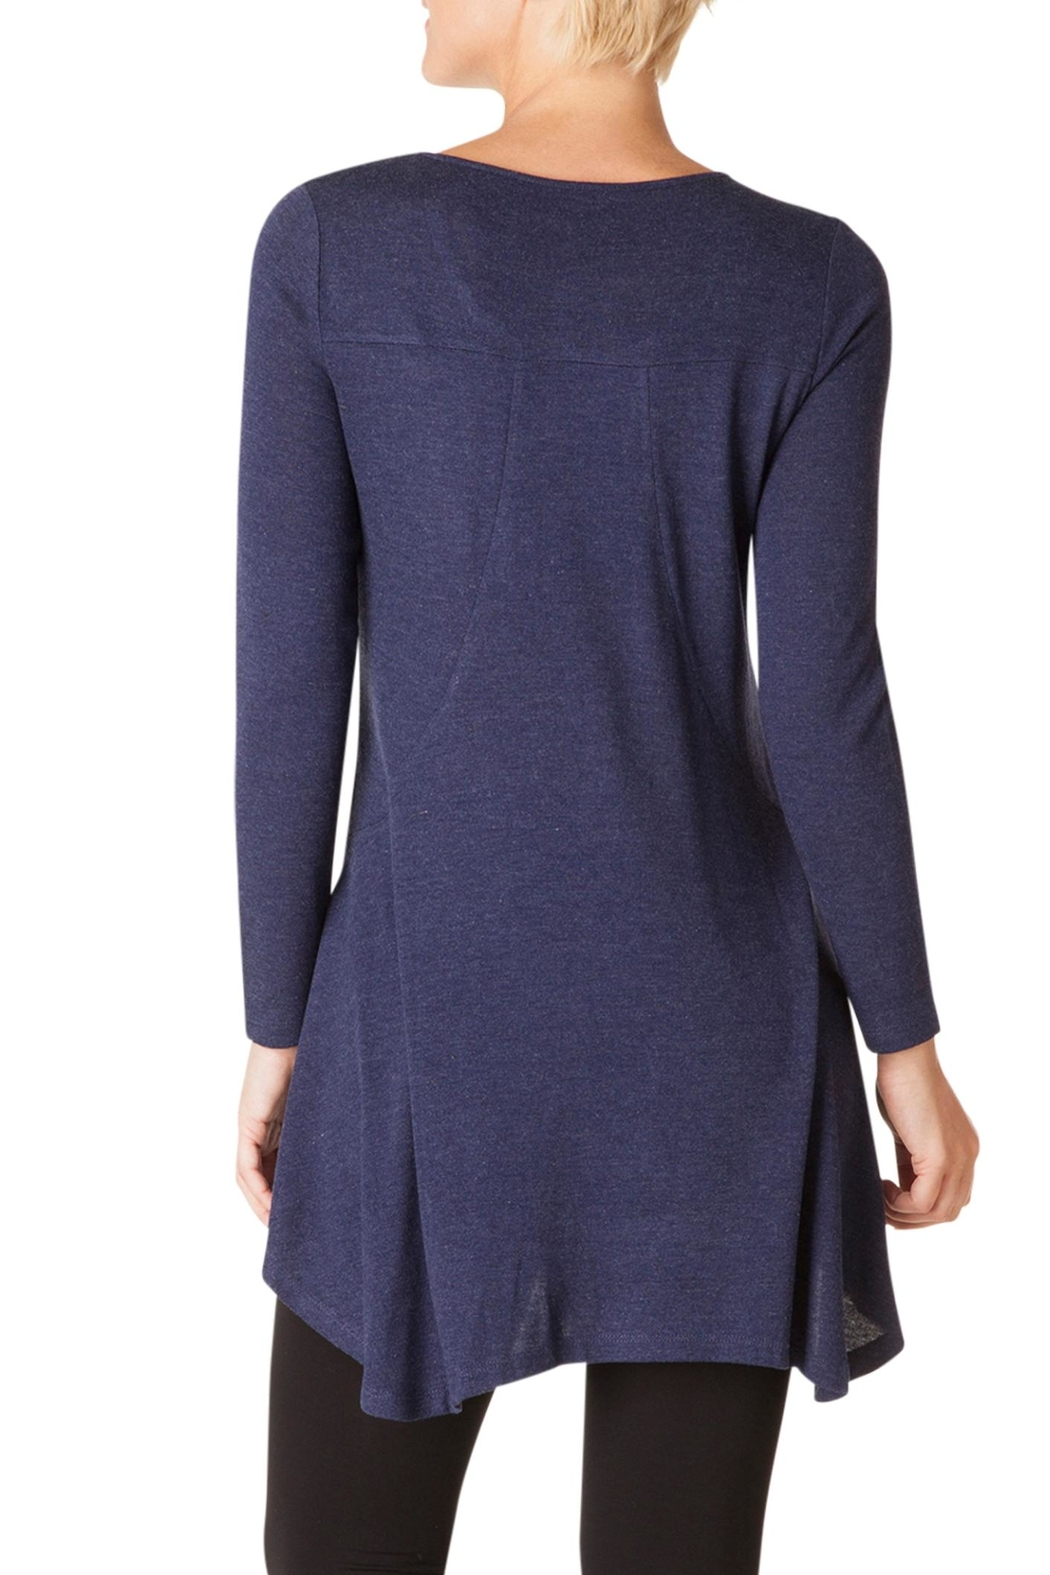 Yest Dreamy Soft Tunic - Front Full Image